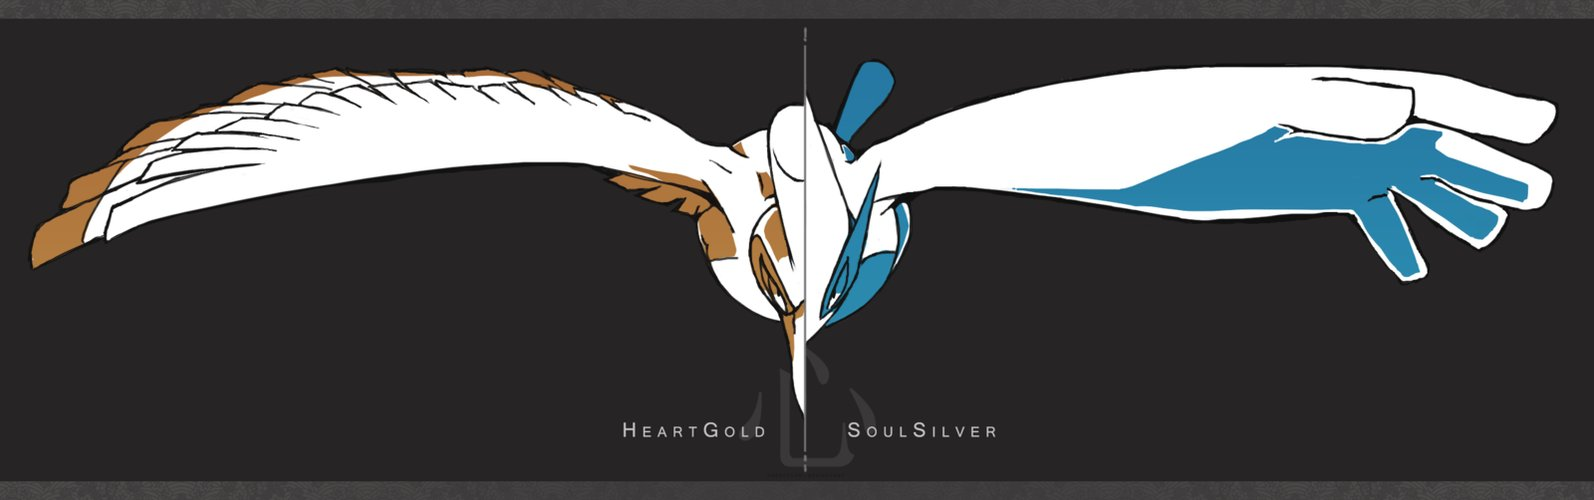 Free Download Heartgold And Soulsilver By Kureculari 1594x500